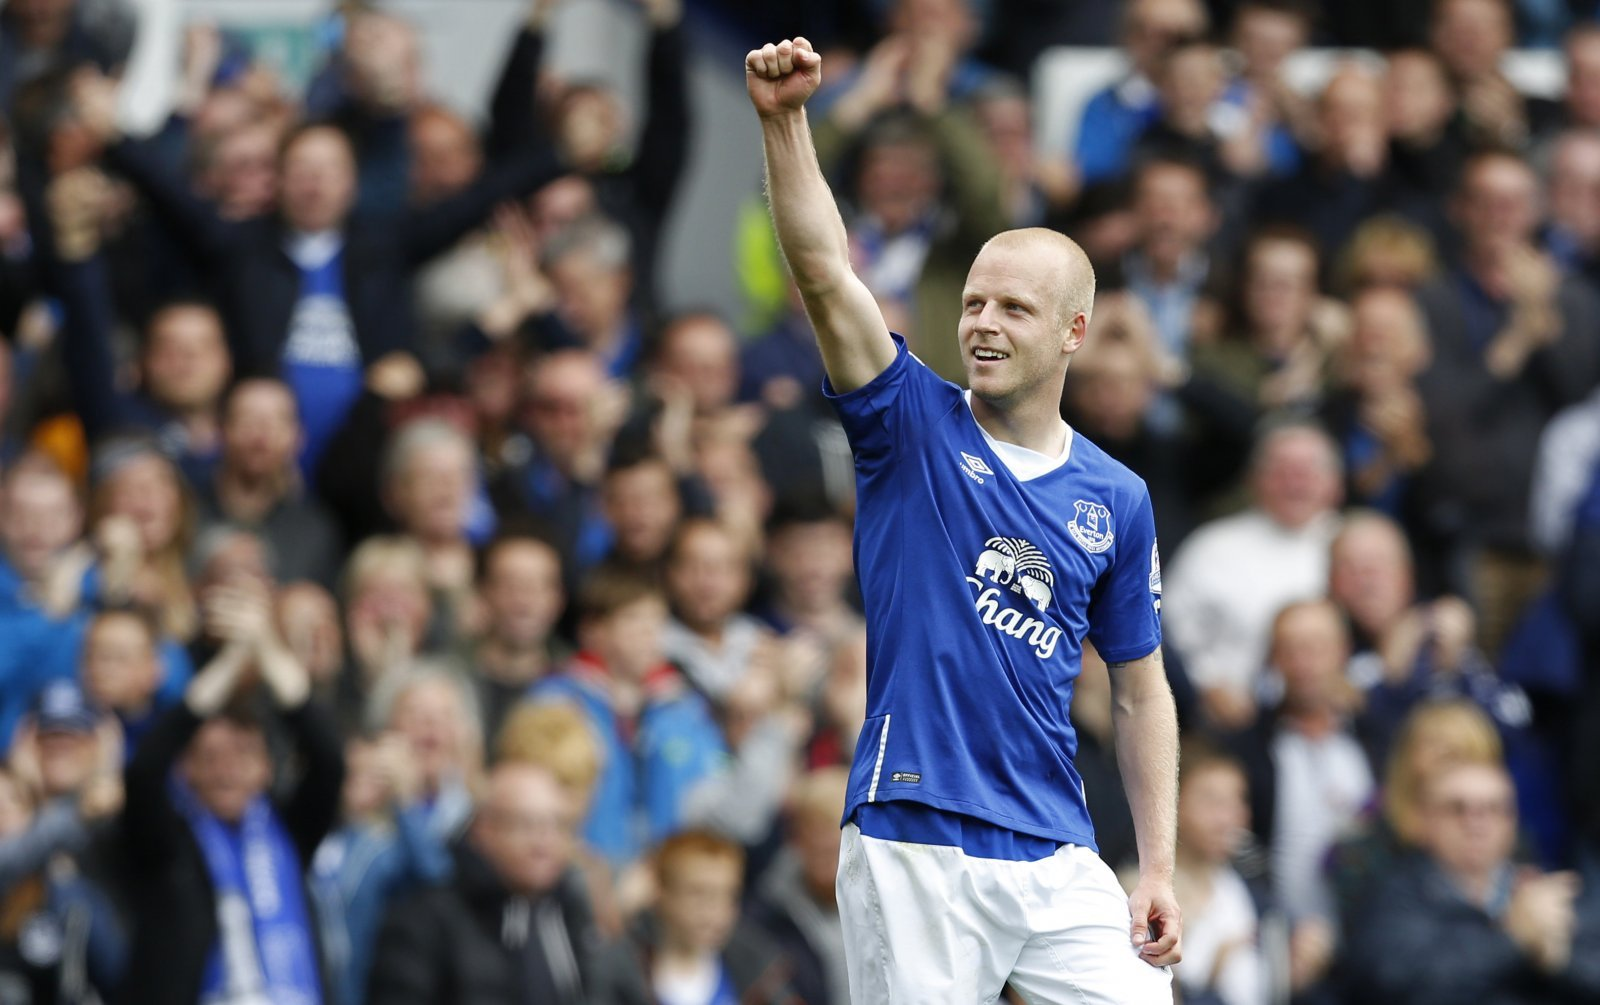 Some Everton fans call for Steven Naismith to return to Goodison Park